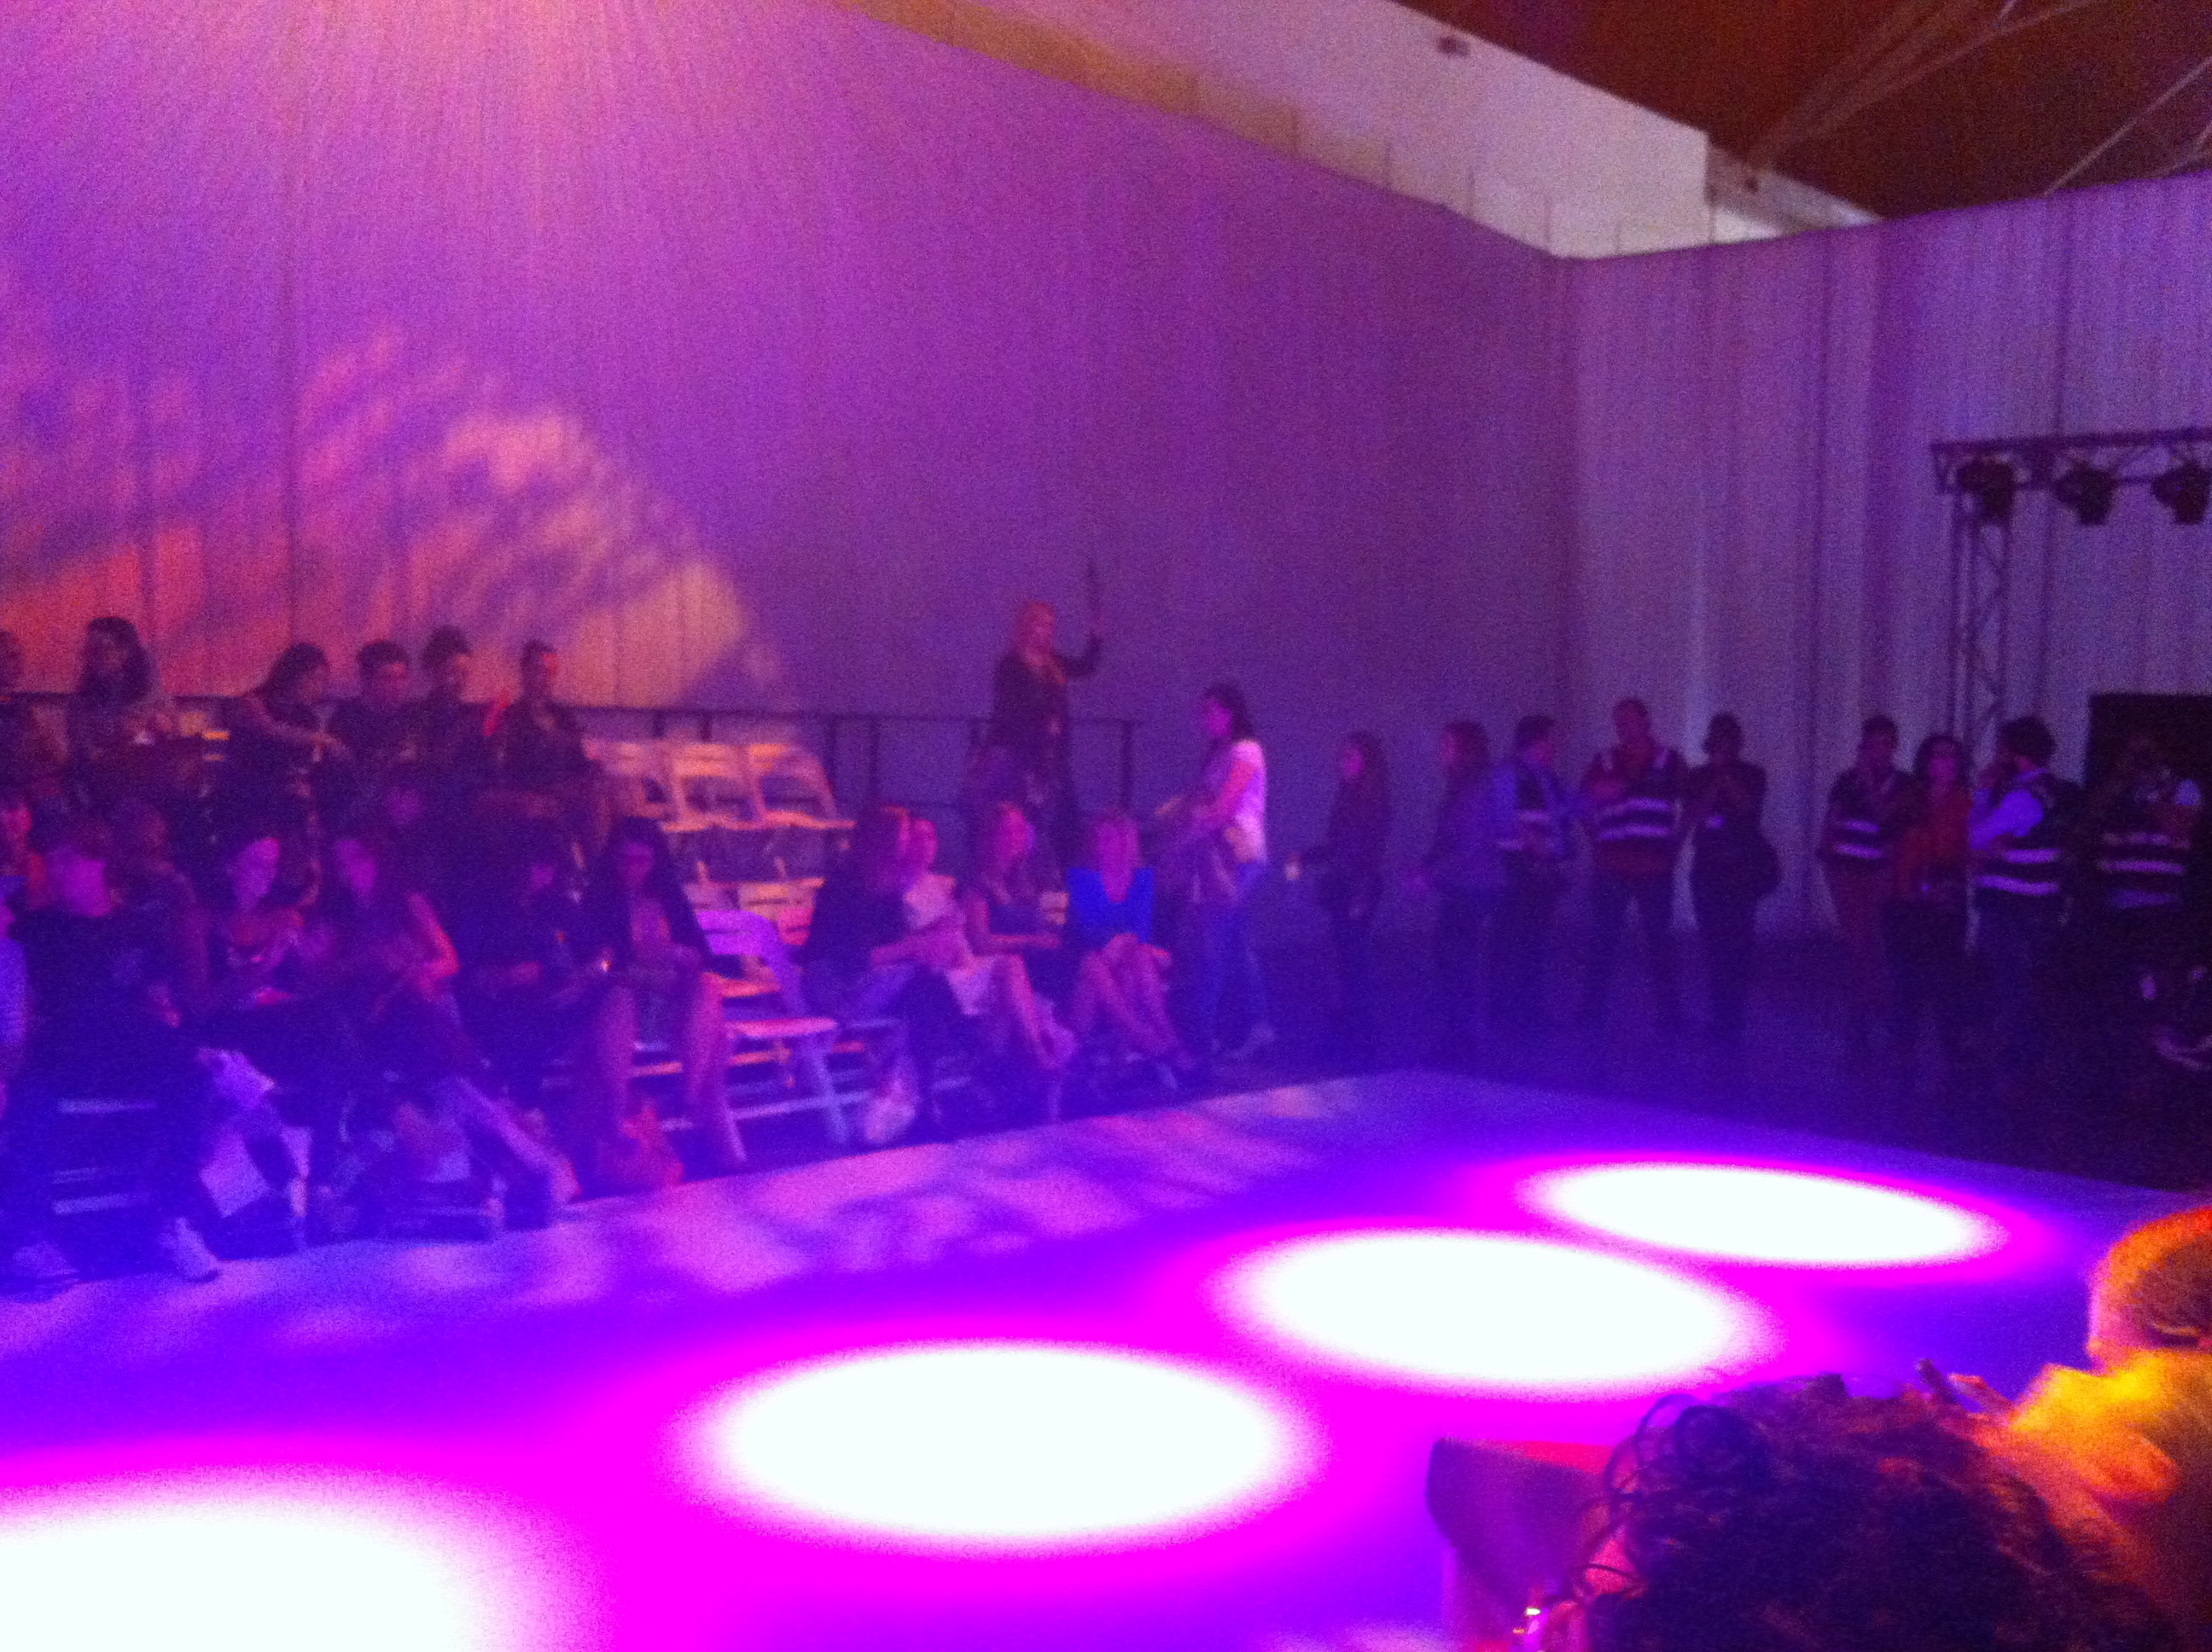 Winter wearables take stage for Sydney Fashion Weekend